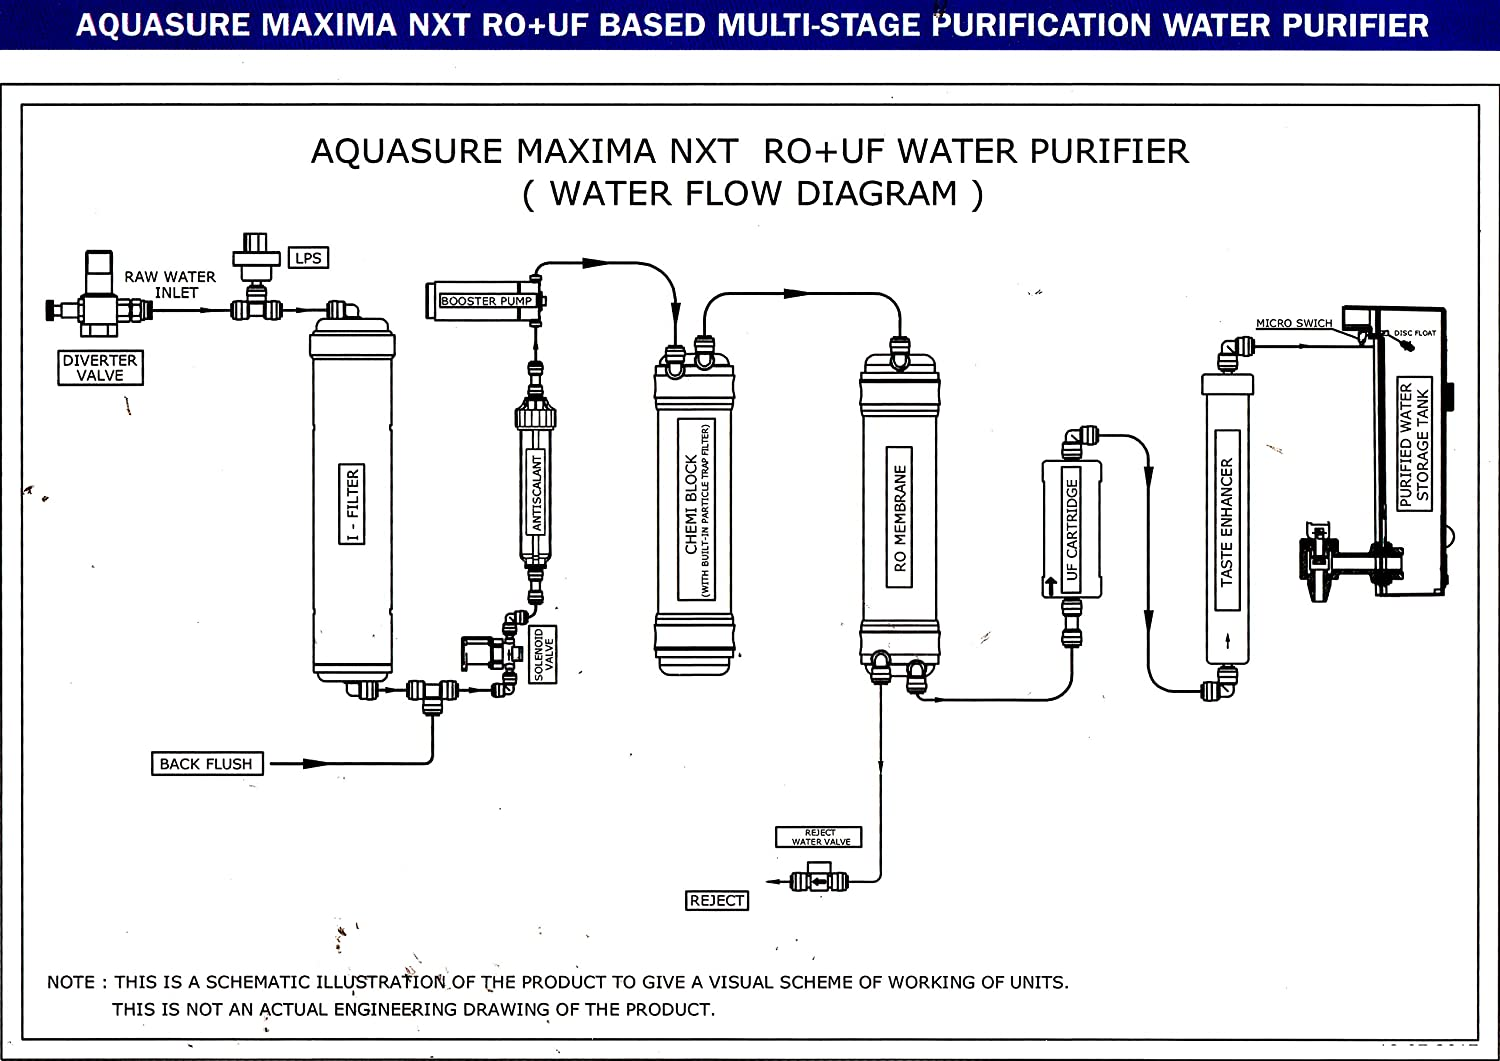 R O Water Purifier Circuit Diagram - All Wiring Diagram Water Flow Reverse Osmosis Schematic Diagram on